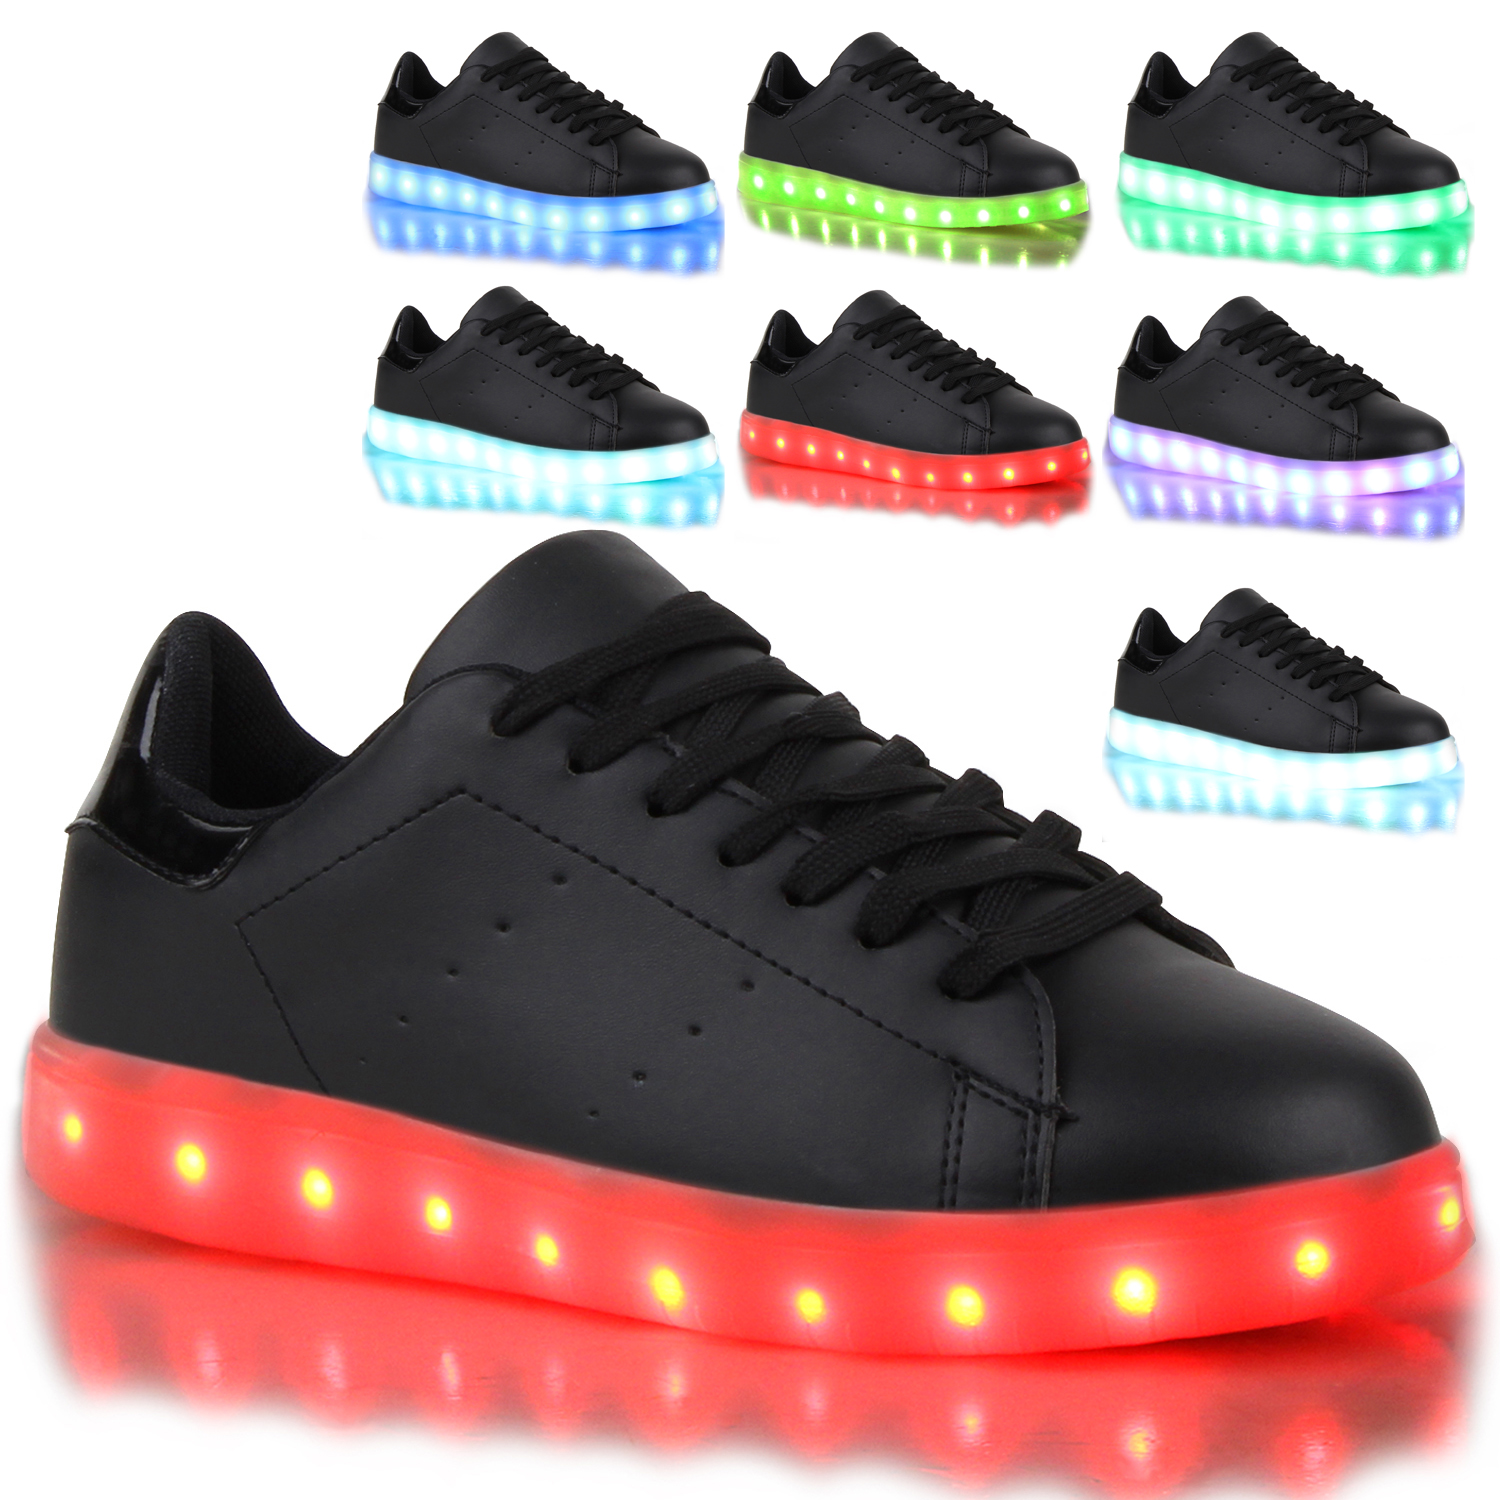 blinkende damen herren kinder sneakers farbwechsel schuhe led licht 78811 ebay. Black Bedroom Furniture Sets. Home Design Ideas